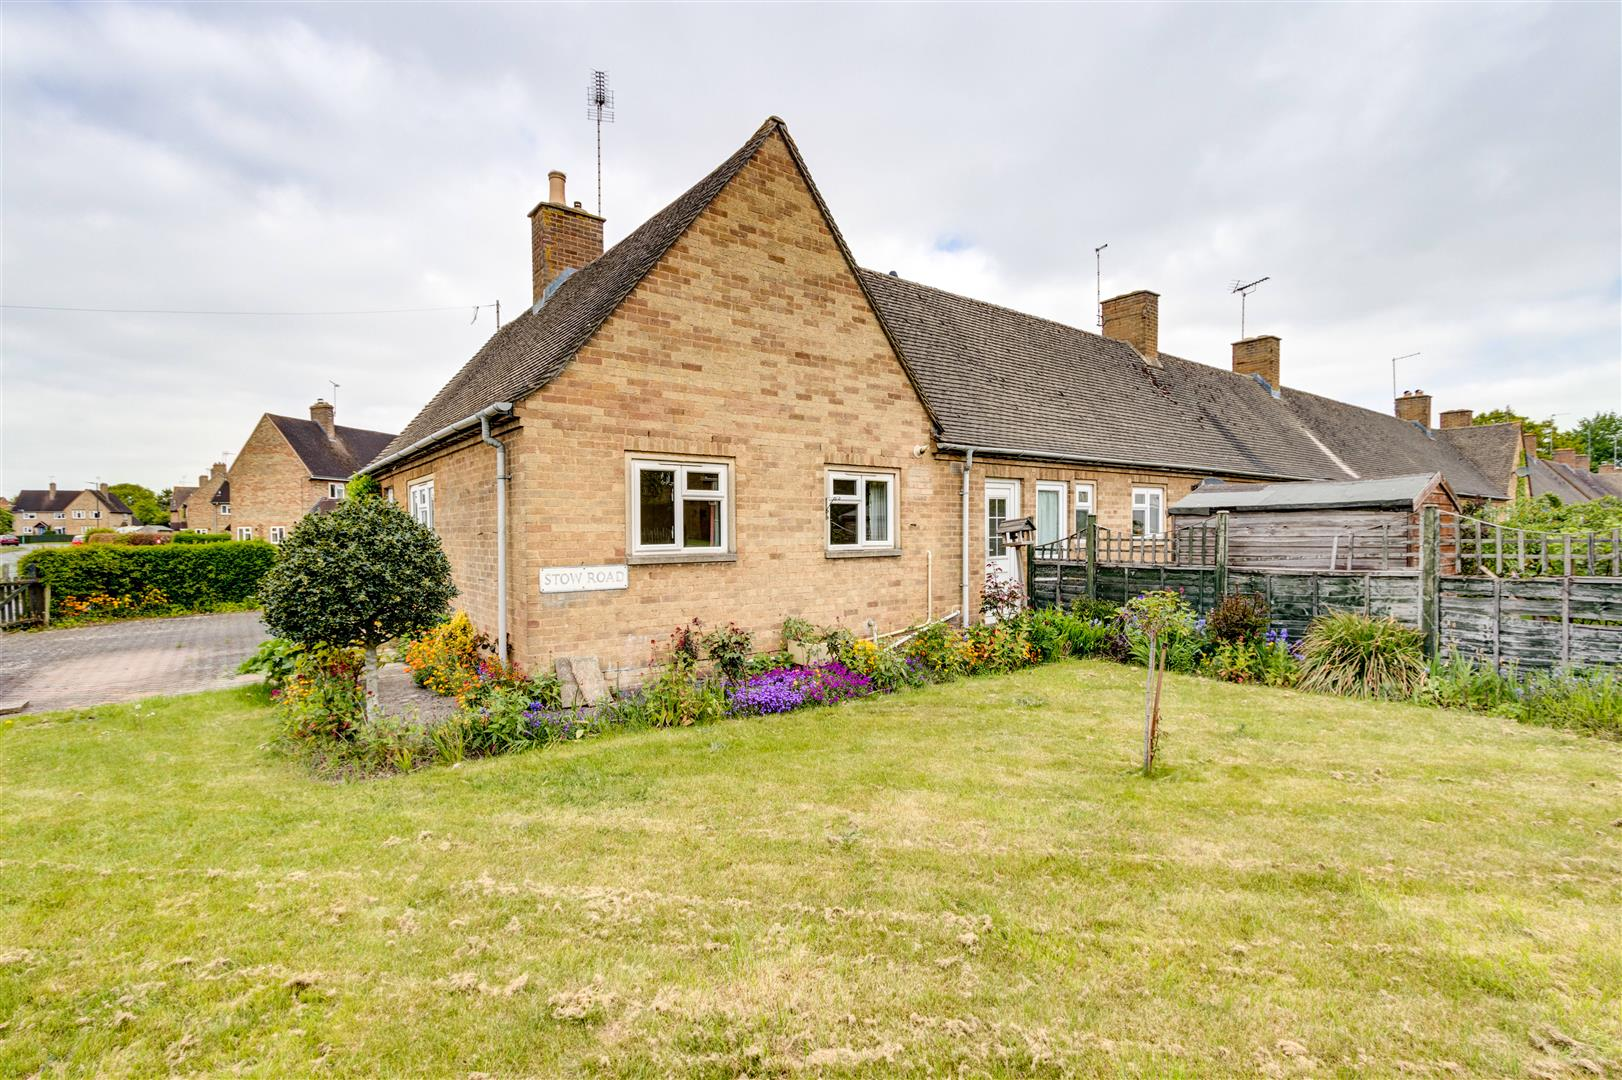 Property Details Stow Road Moreton In Marsh